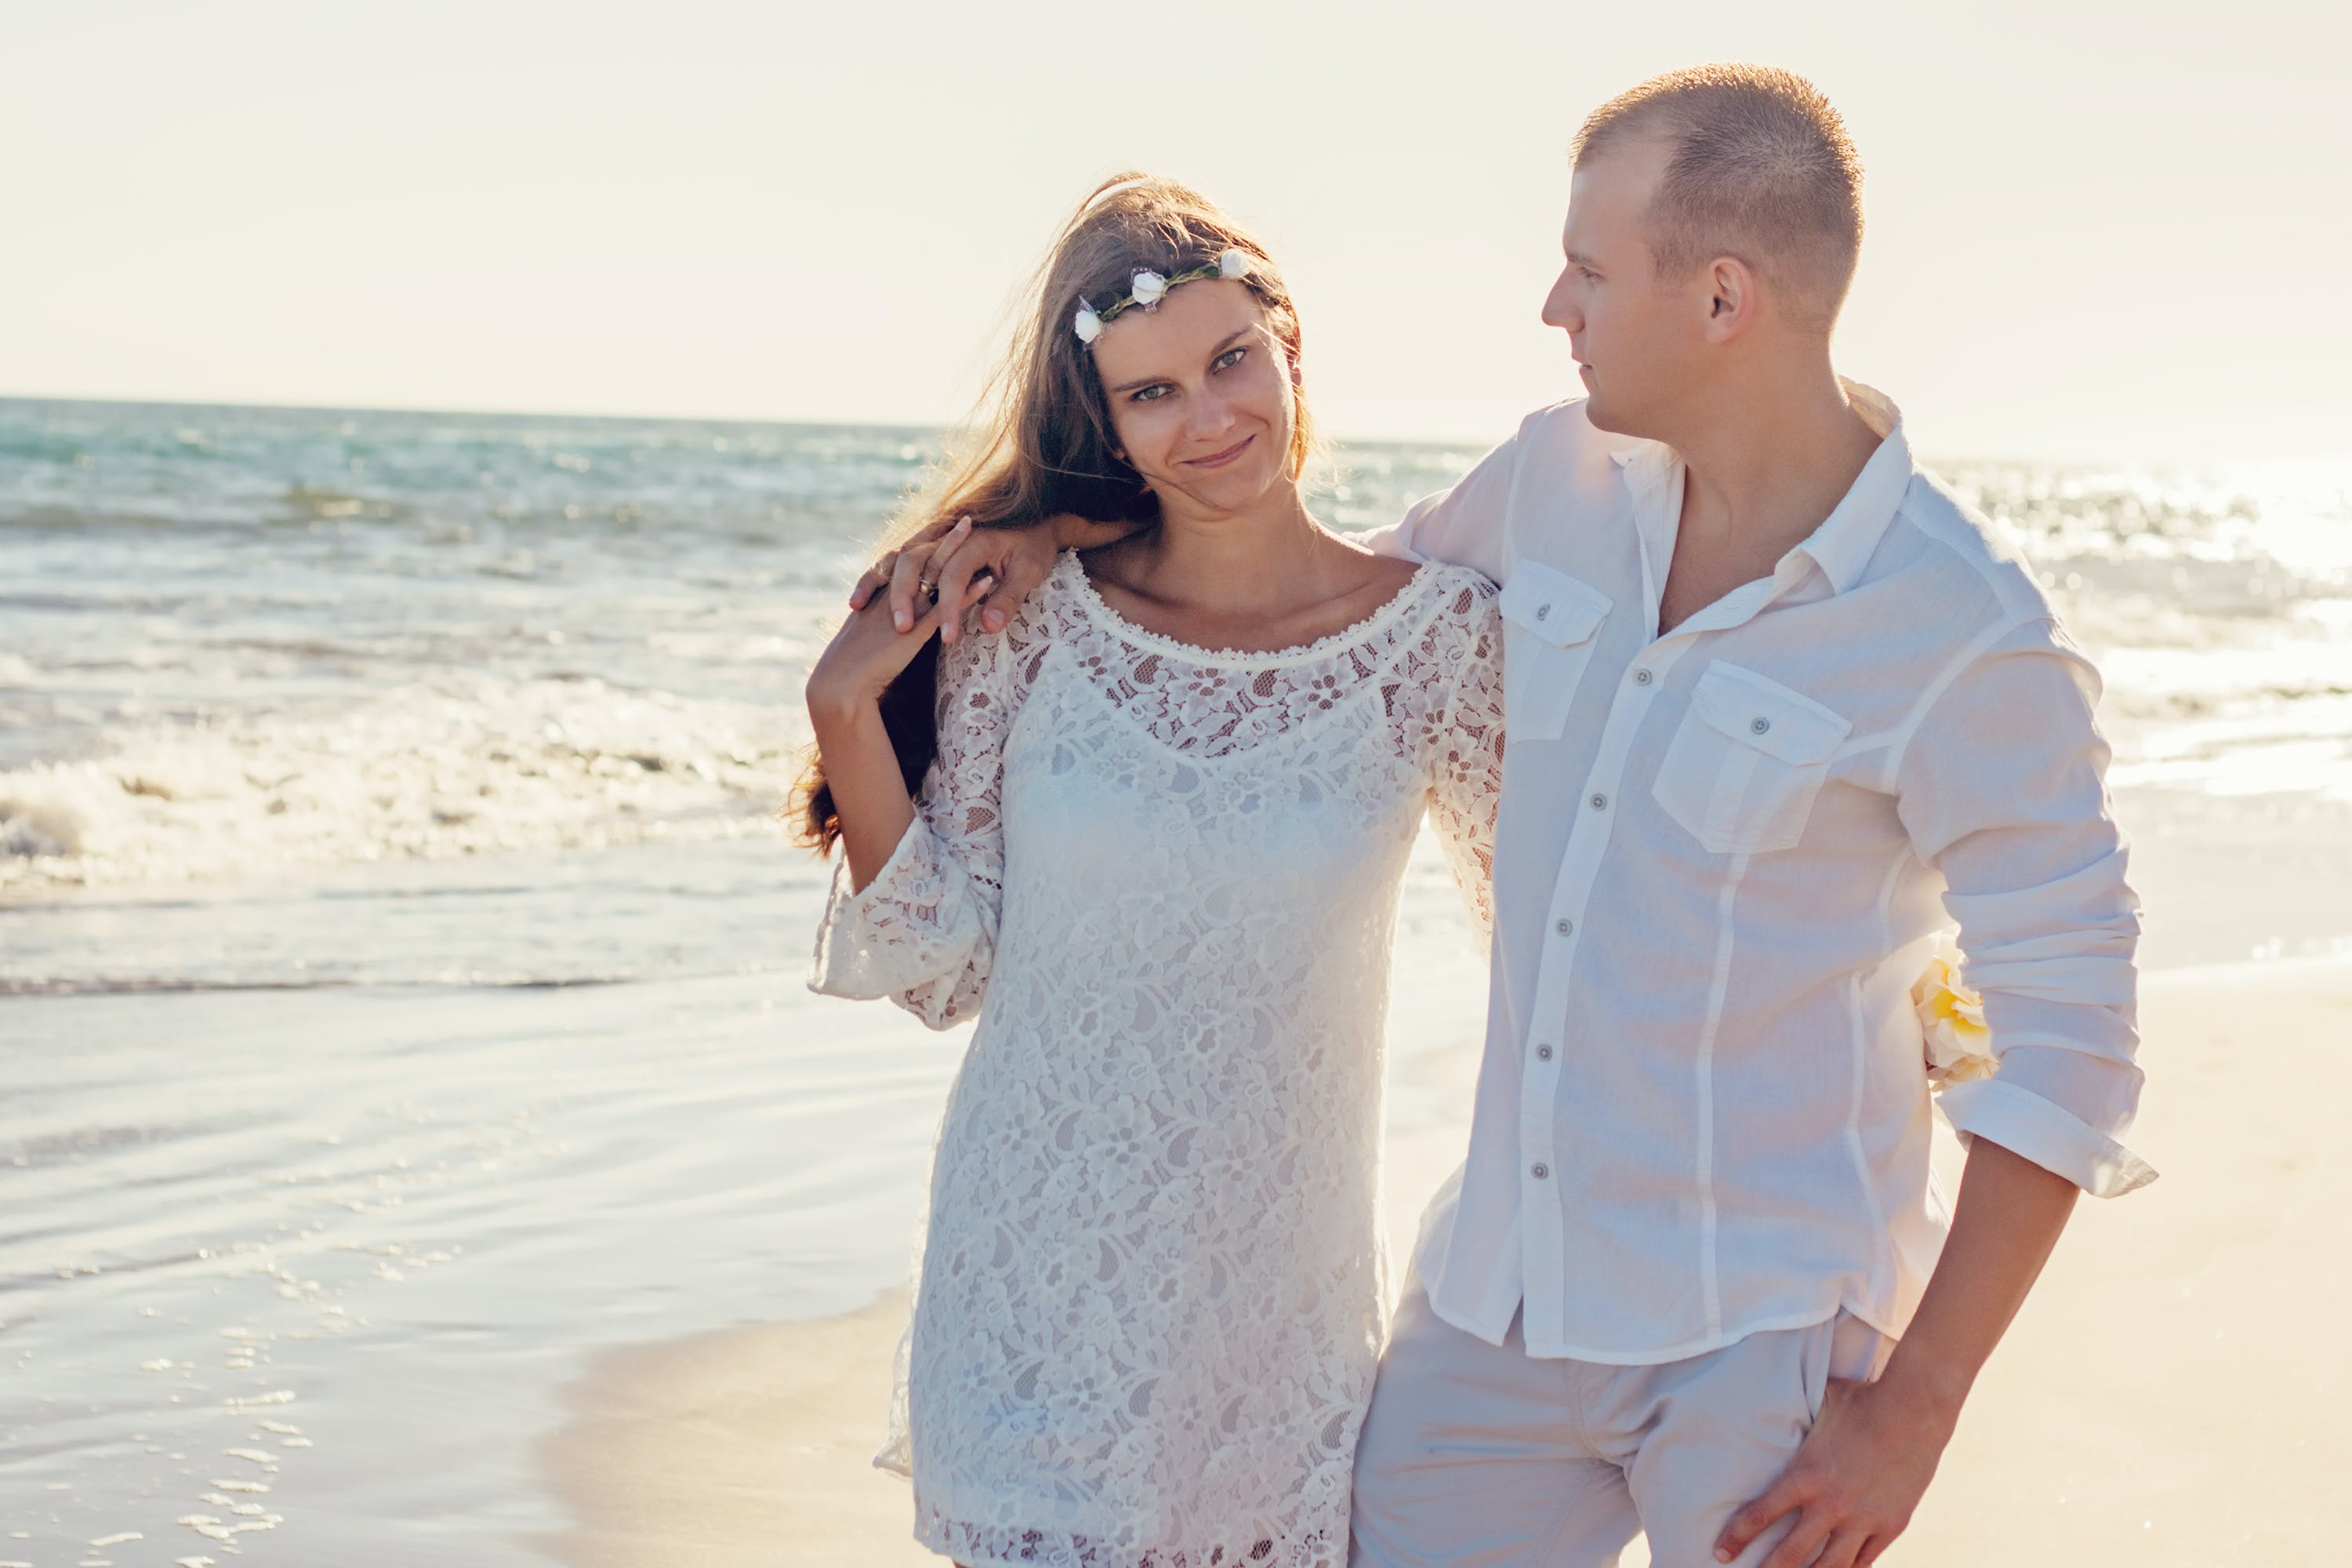 Woman and Man Standing Near on Body of Water